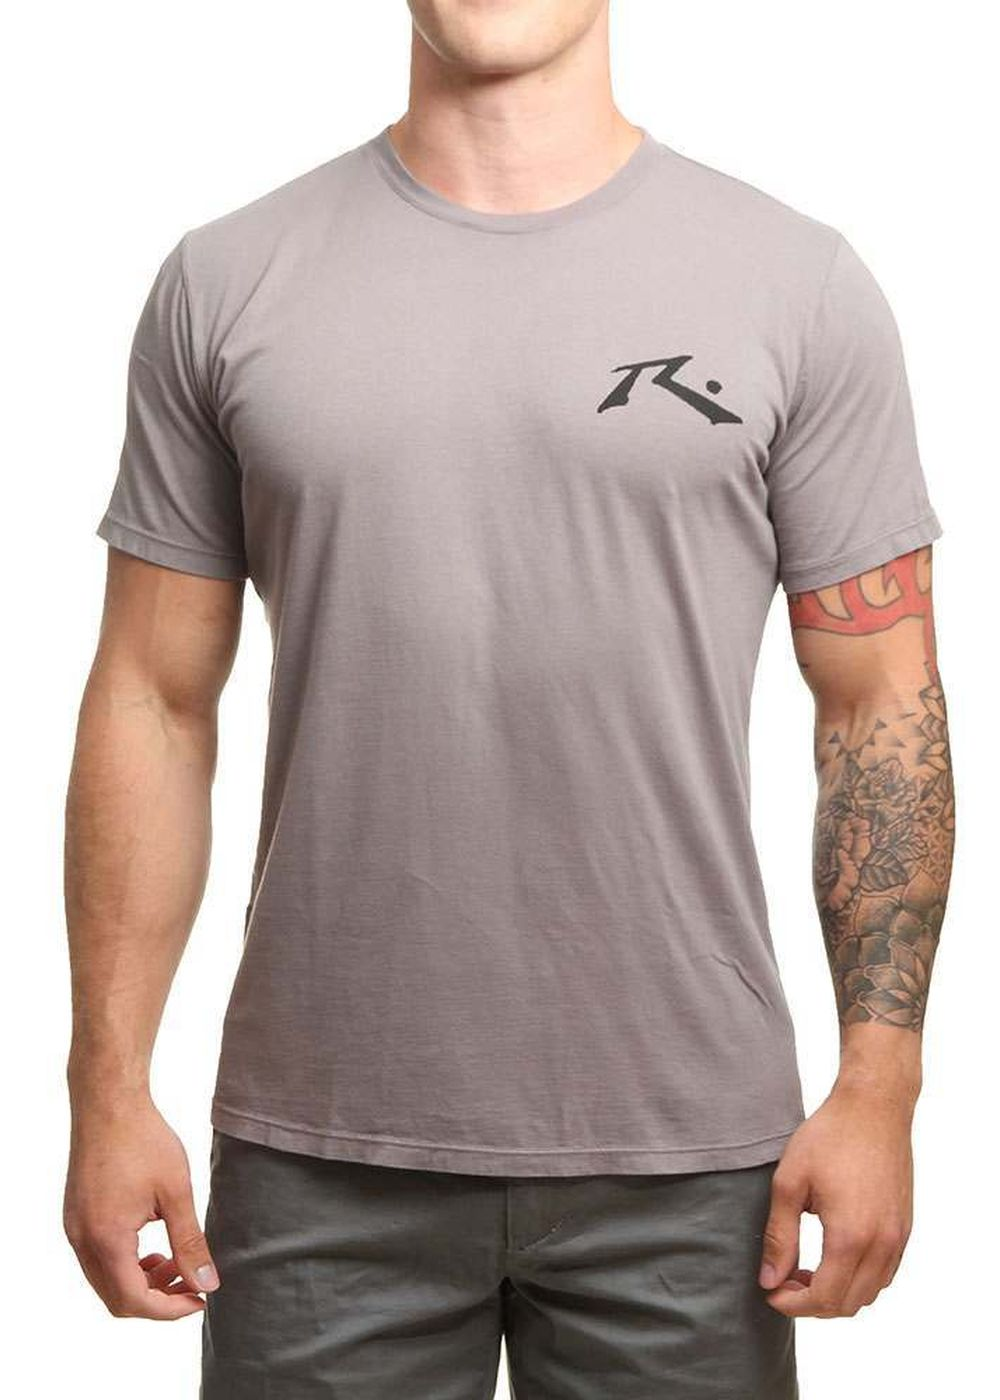 rusty-competition-tee-stone-grey